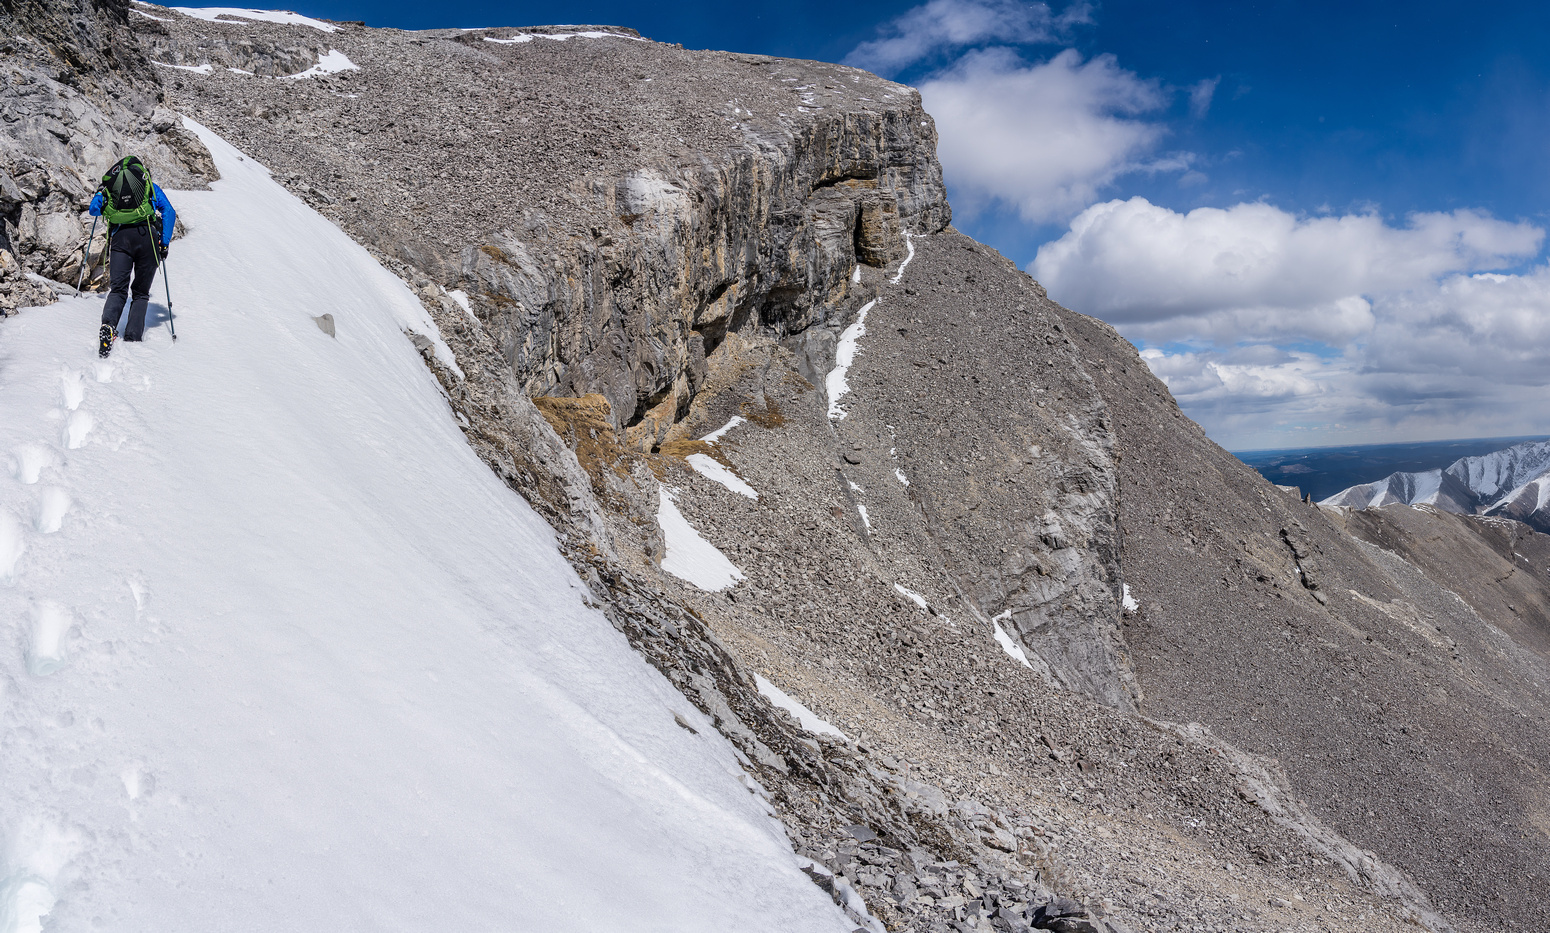 Turning back up the SE gully, finding a route to the upper SW summit ridge. Our ledge at lower right